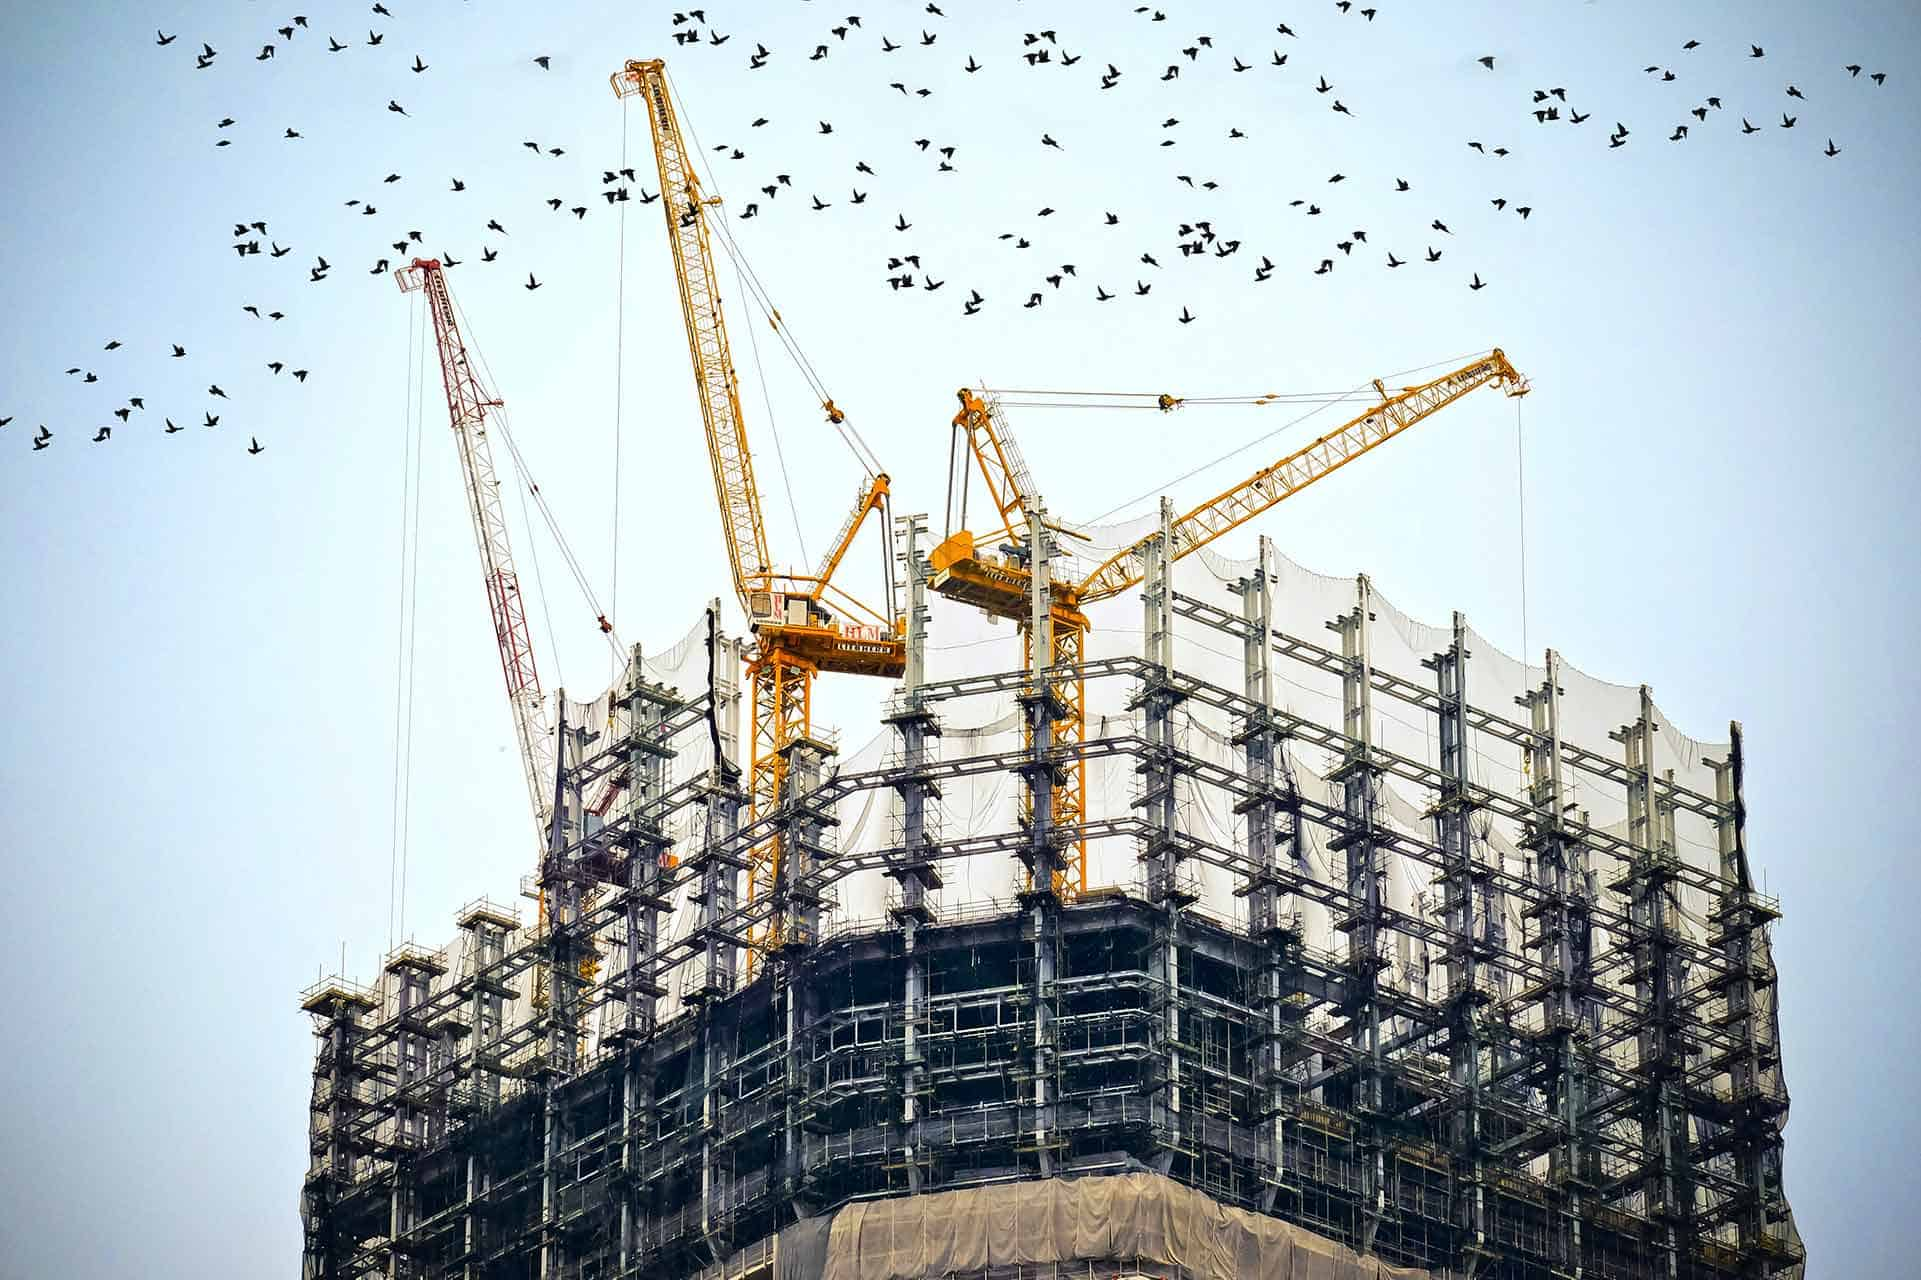 CPA for the construction industry